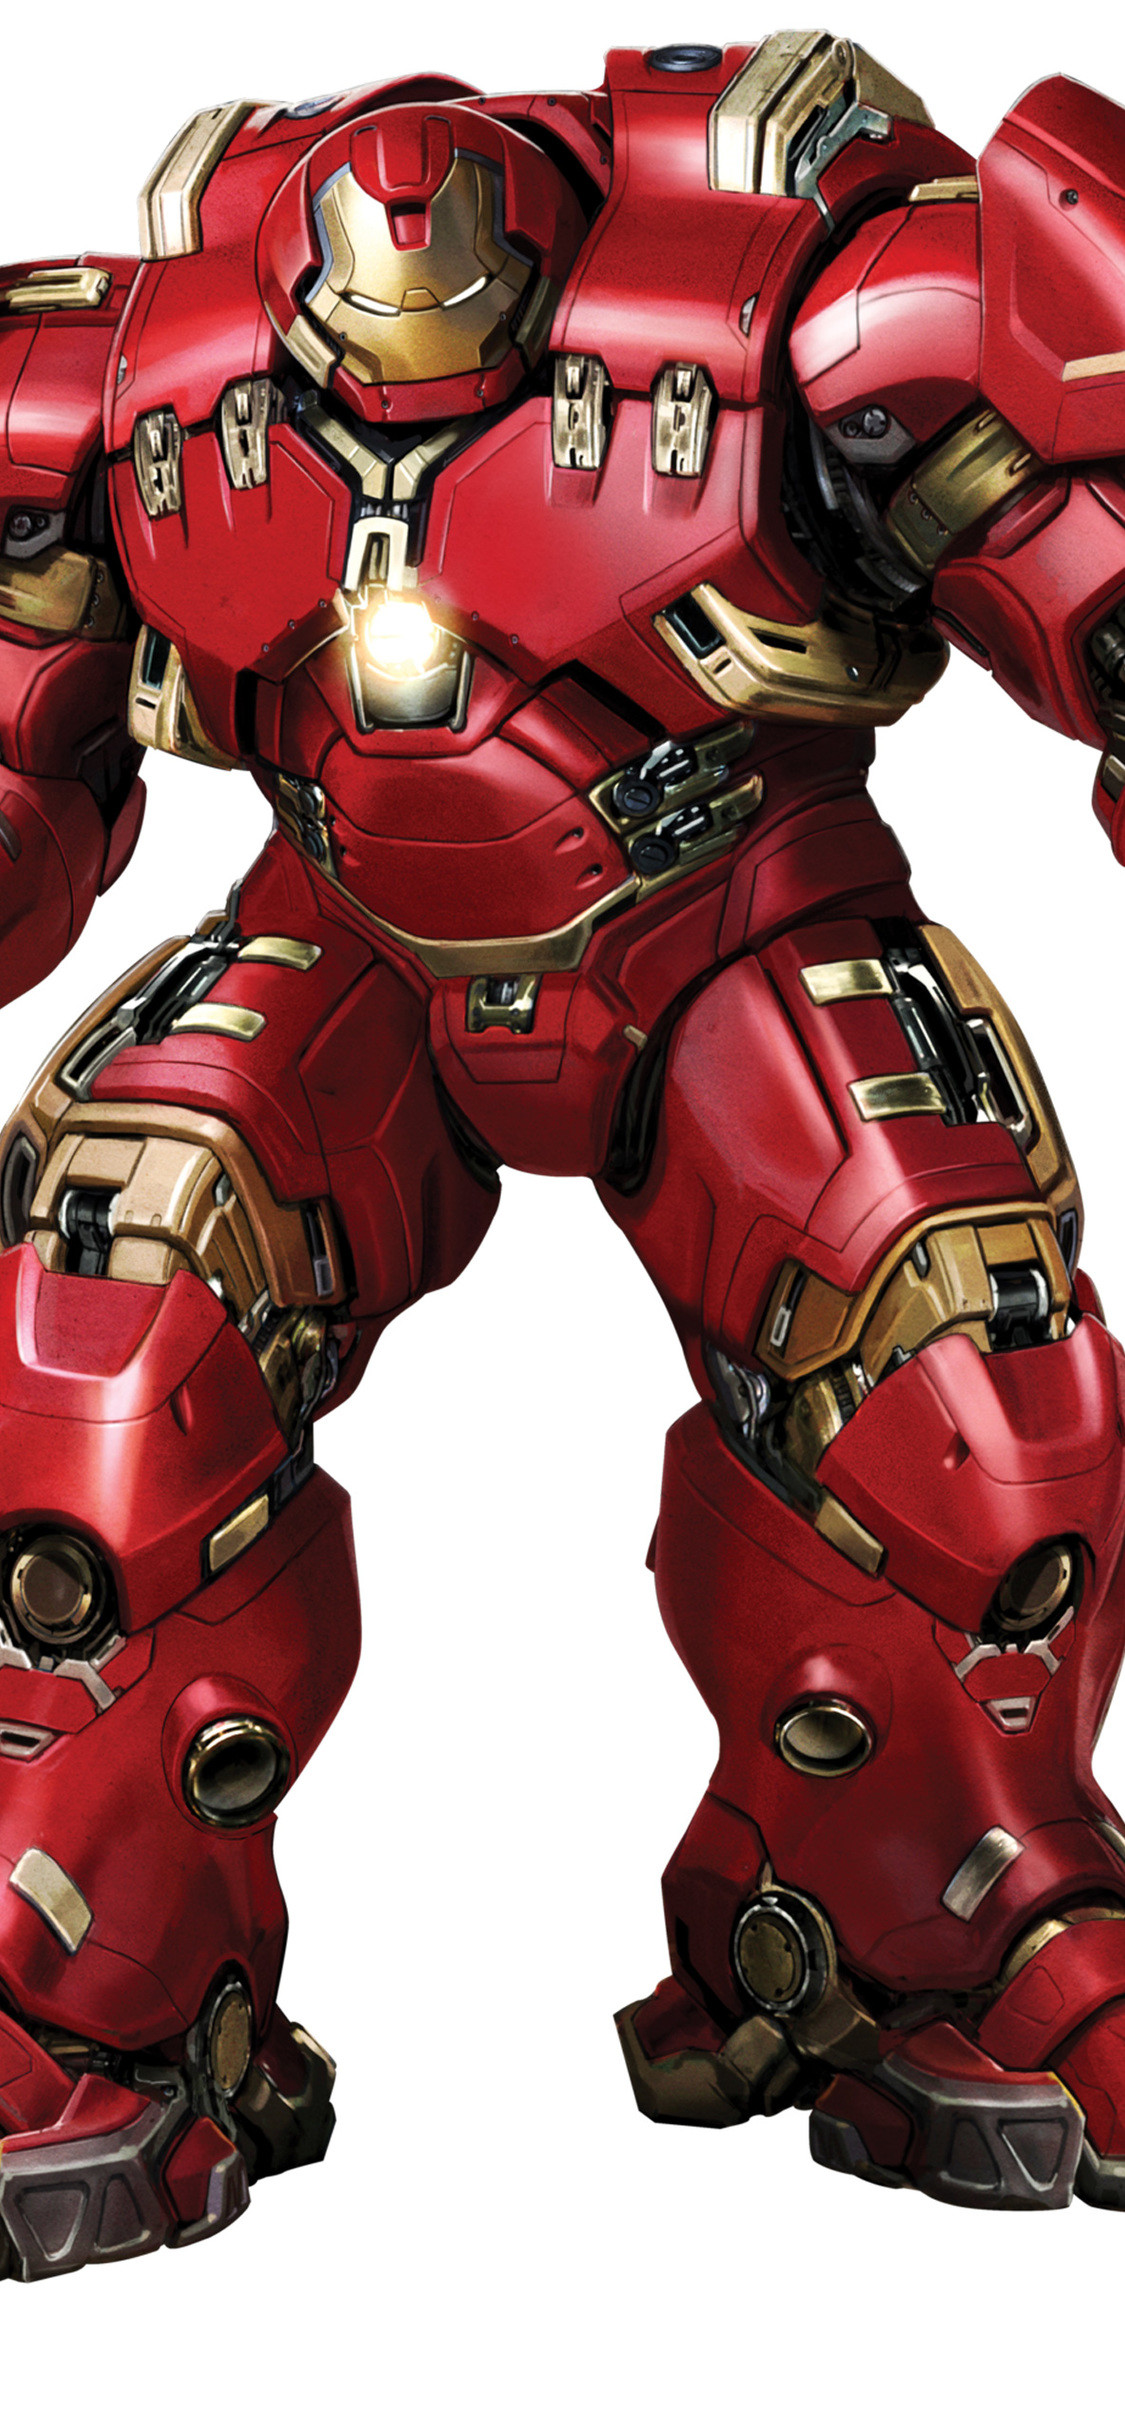 Res: 1125x2436, hulkbuster-suit-artwork-lu.jpg